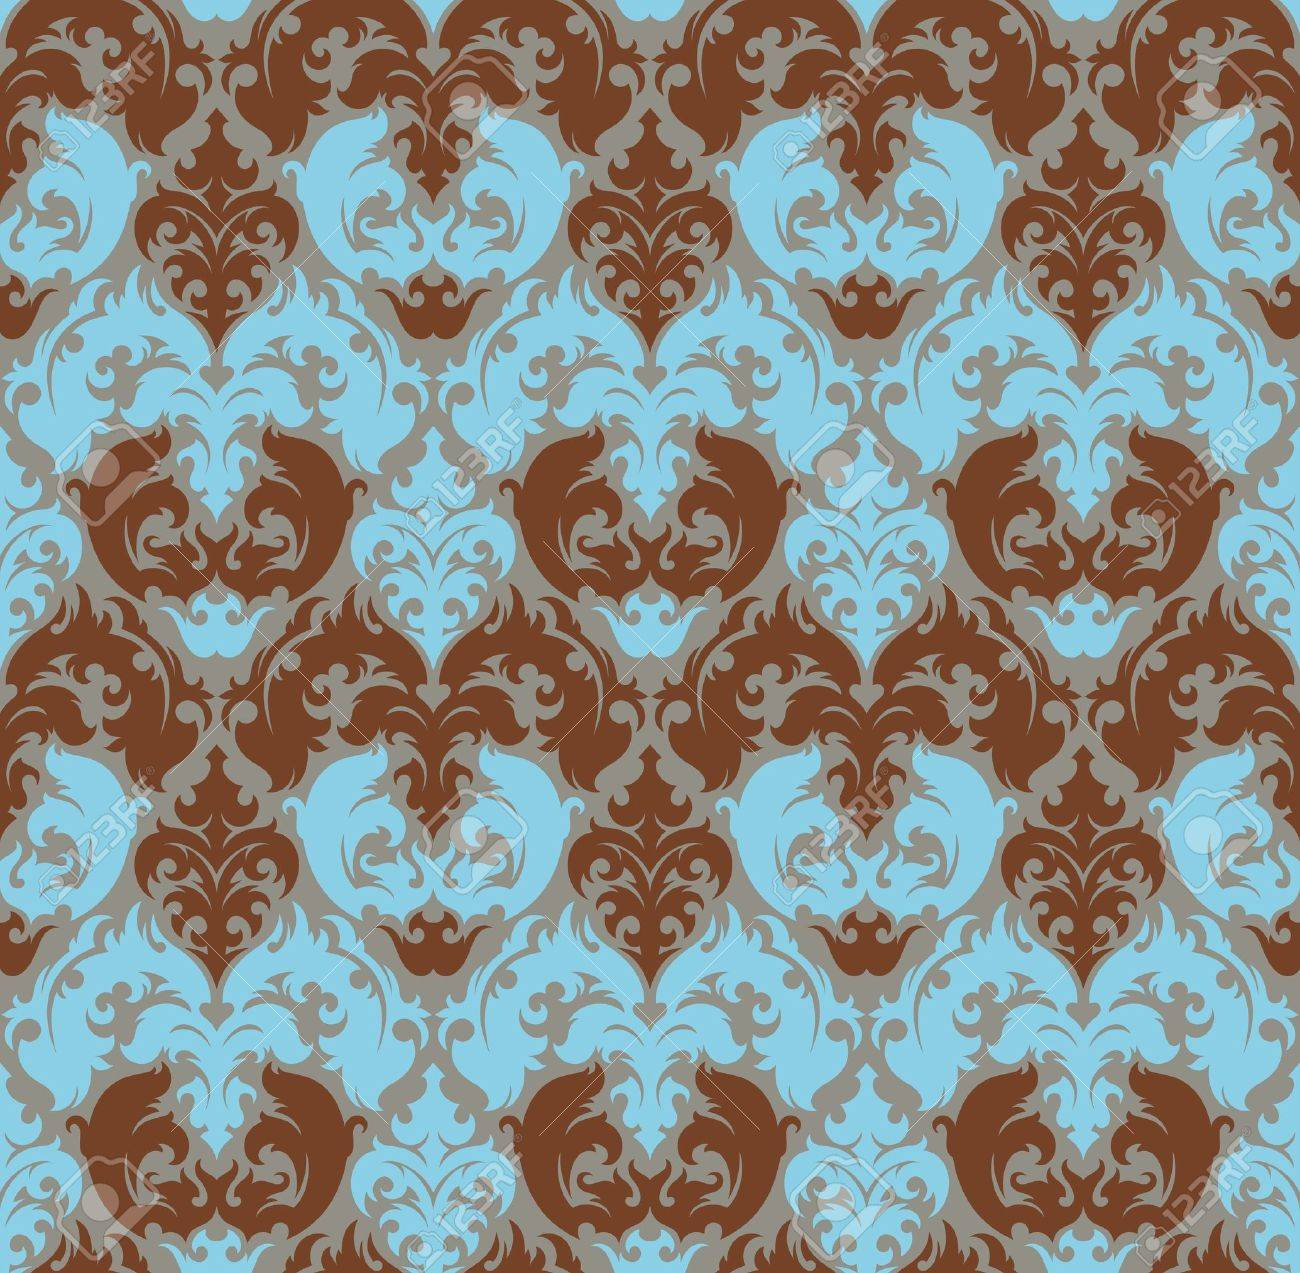 Seamless background from a floral ornament, Fashionable modern wallpaper or textile - 7087830